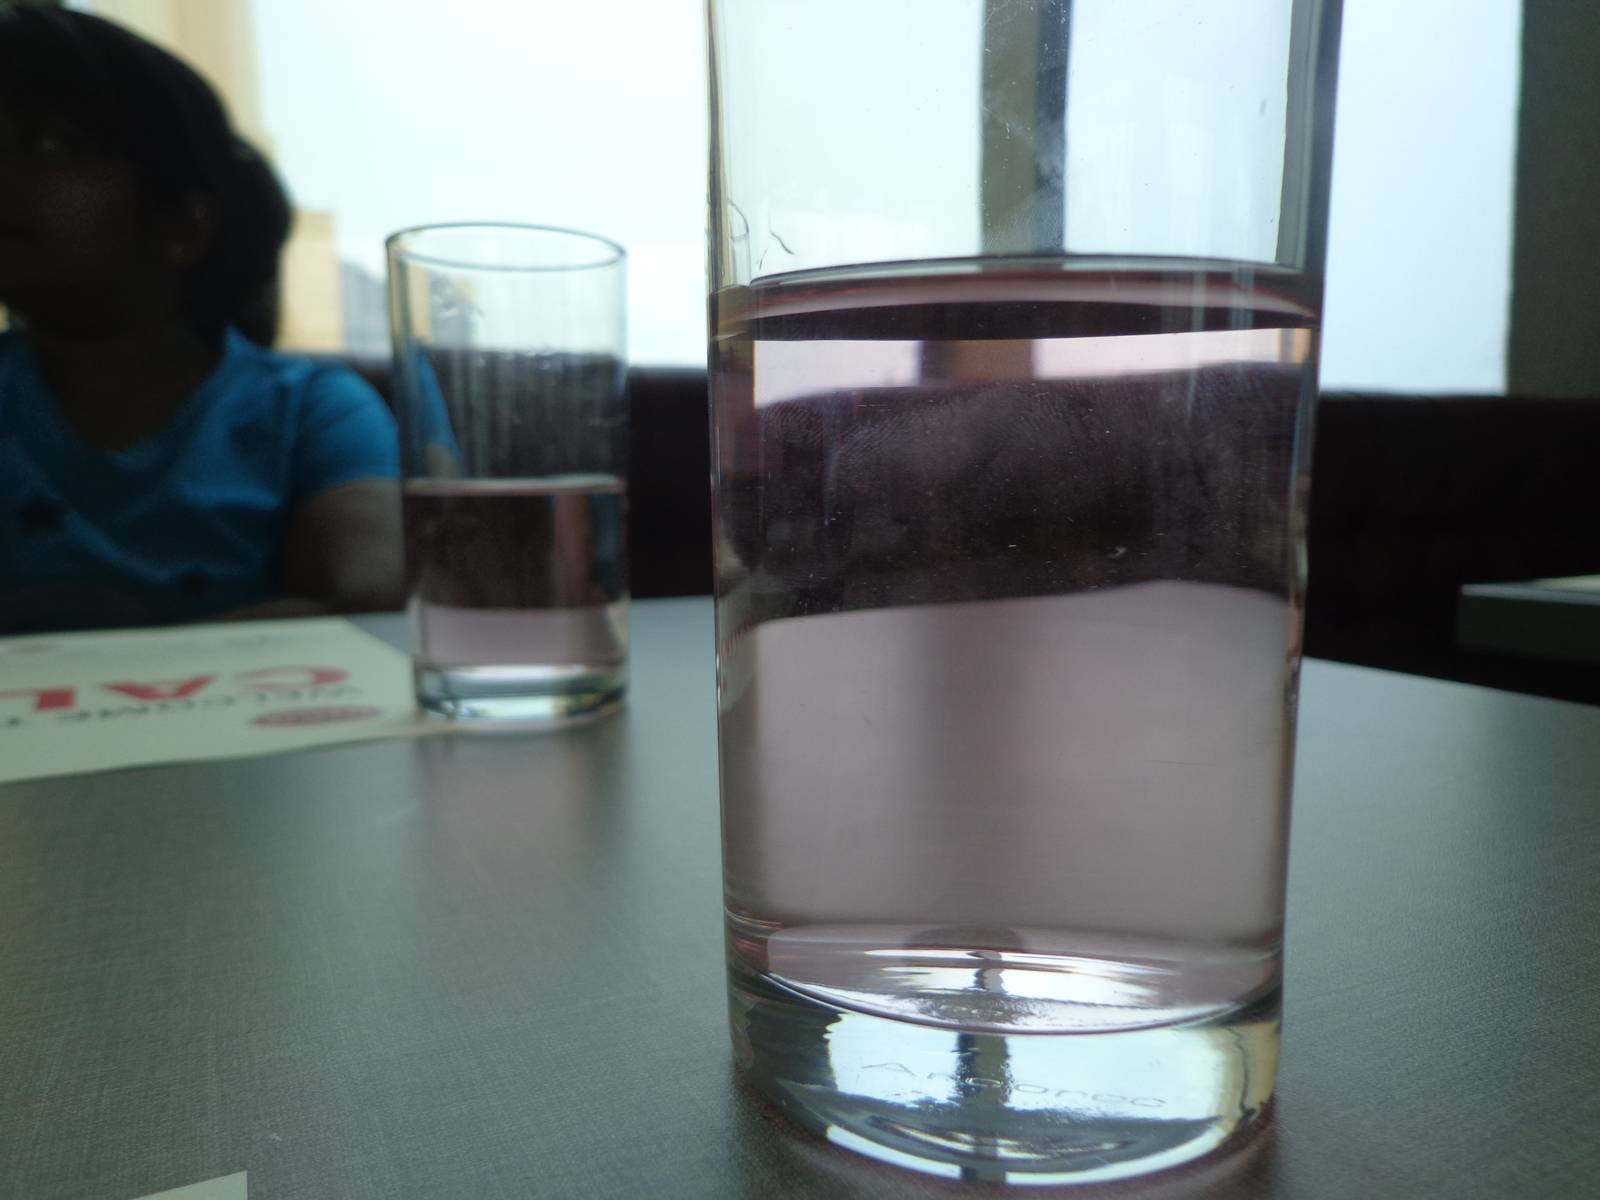 The pinkish hue of water is due to the usage of some herbal roots that is supposed to help in digestion.